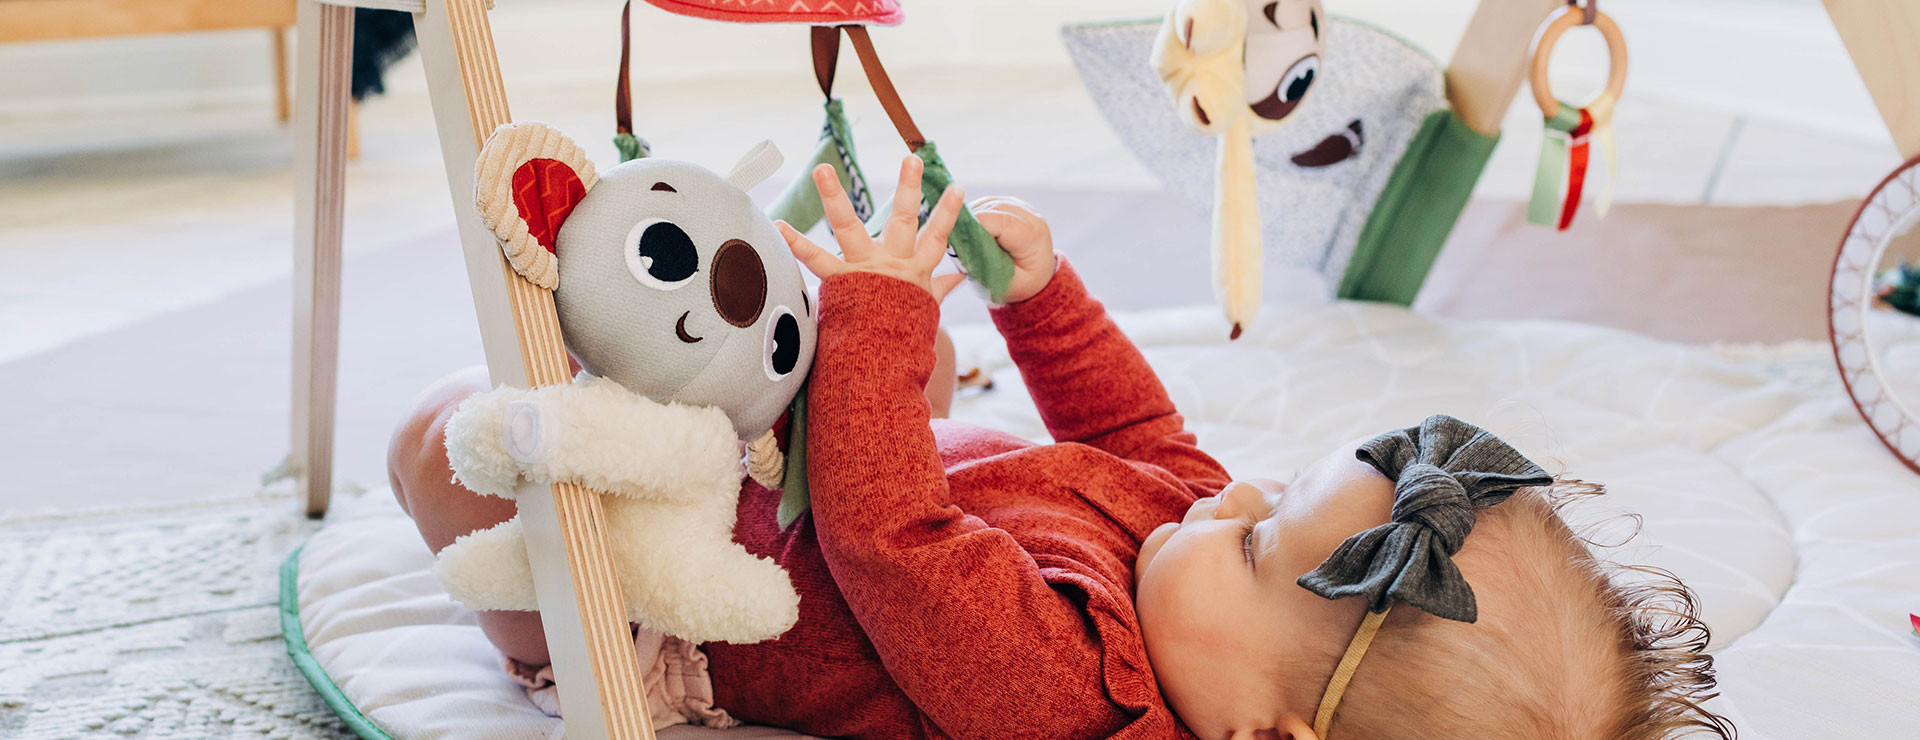 Crinkly eucalyptus mobile offers rich sensory stimulation